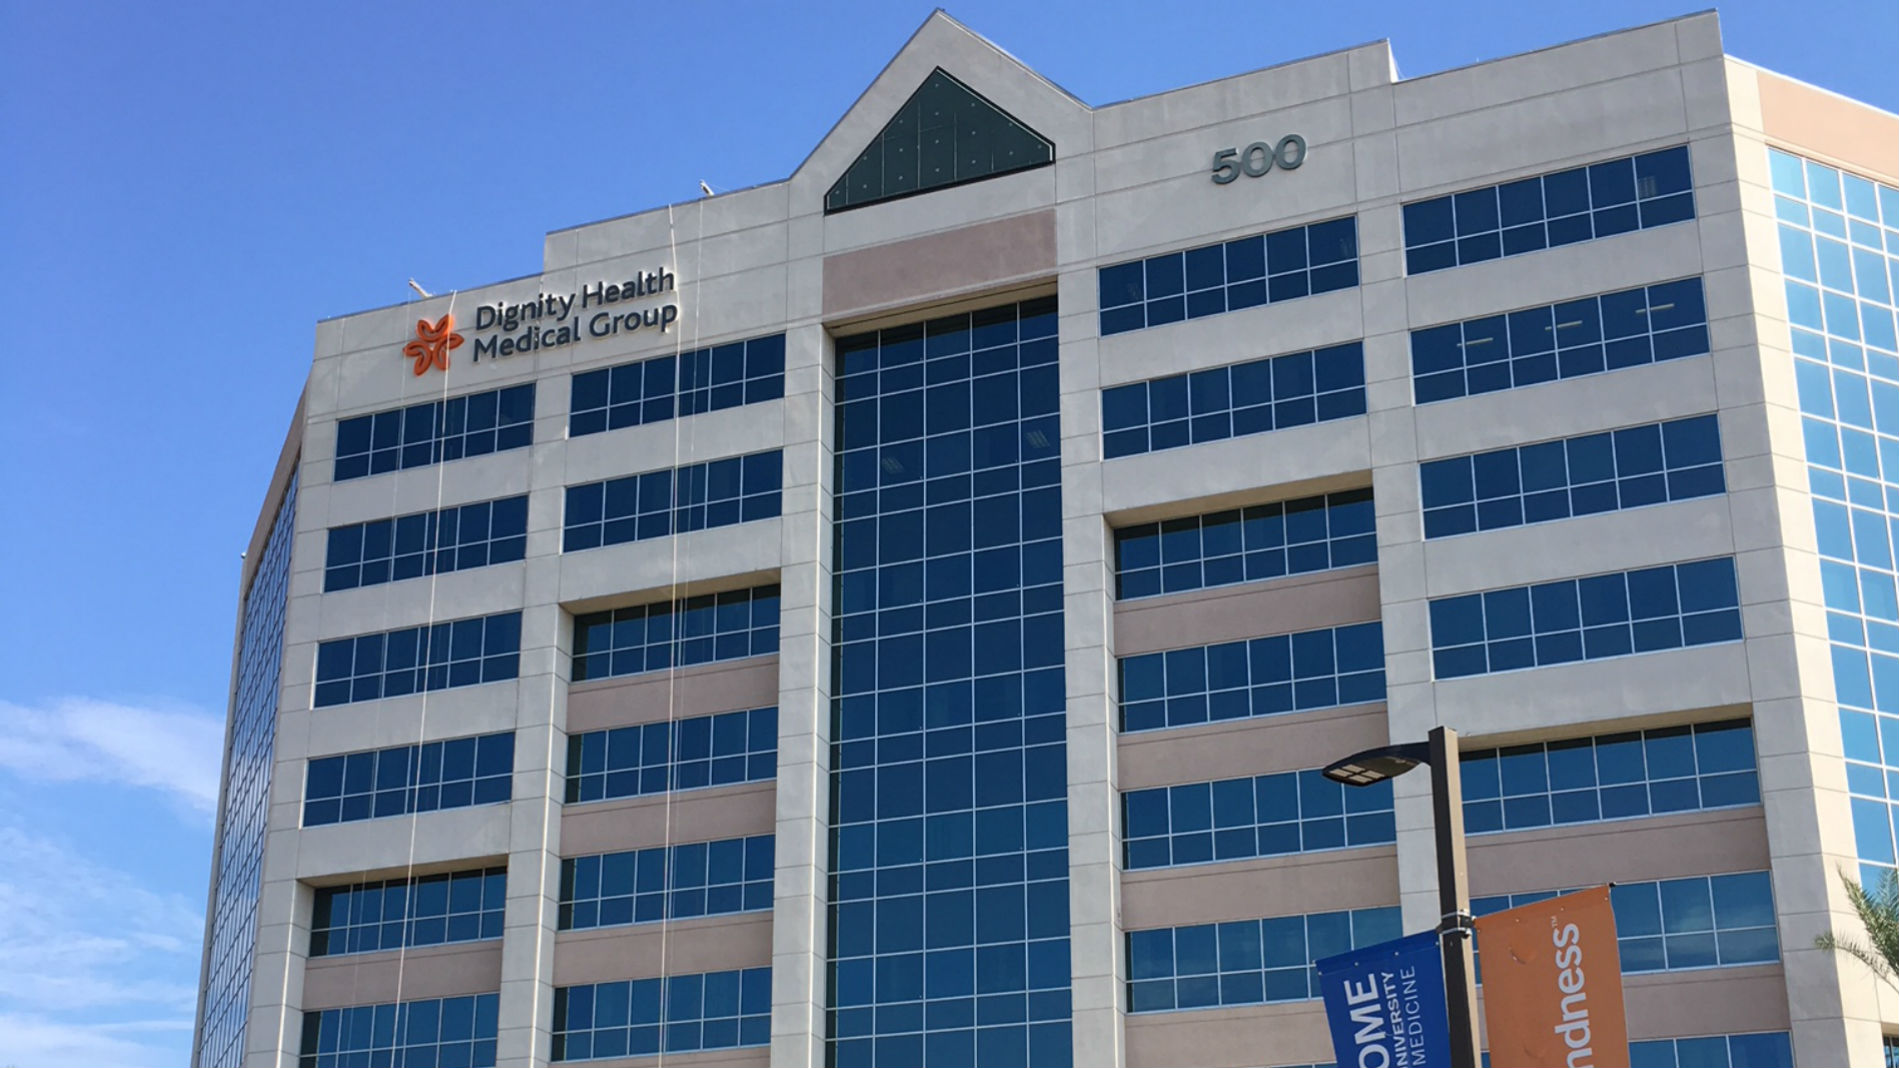 Dignity Health Medical Group Center for Liver Disease and Transplantation - St. Joseph's